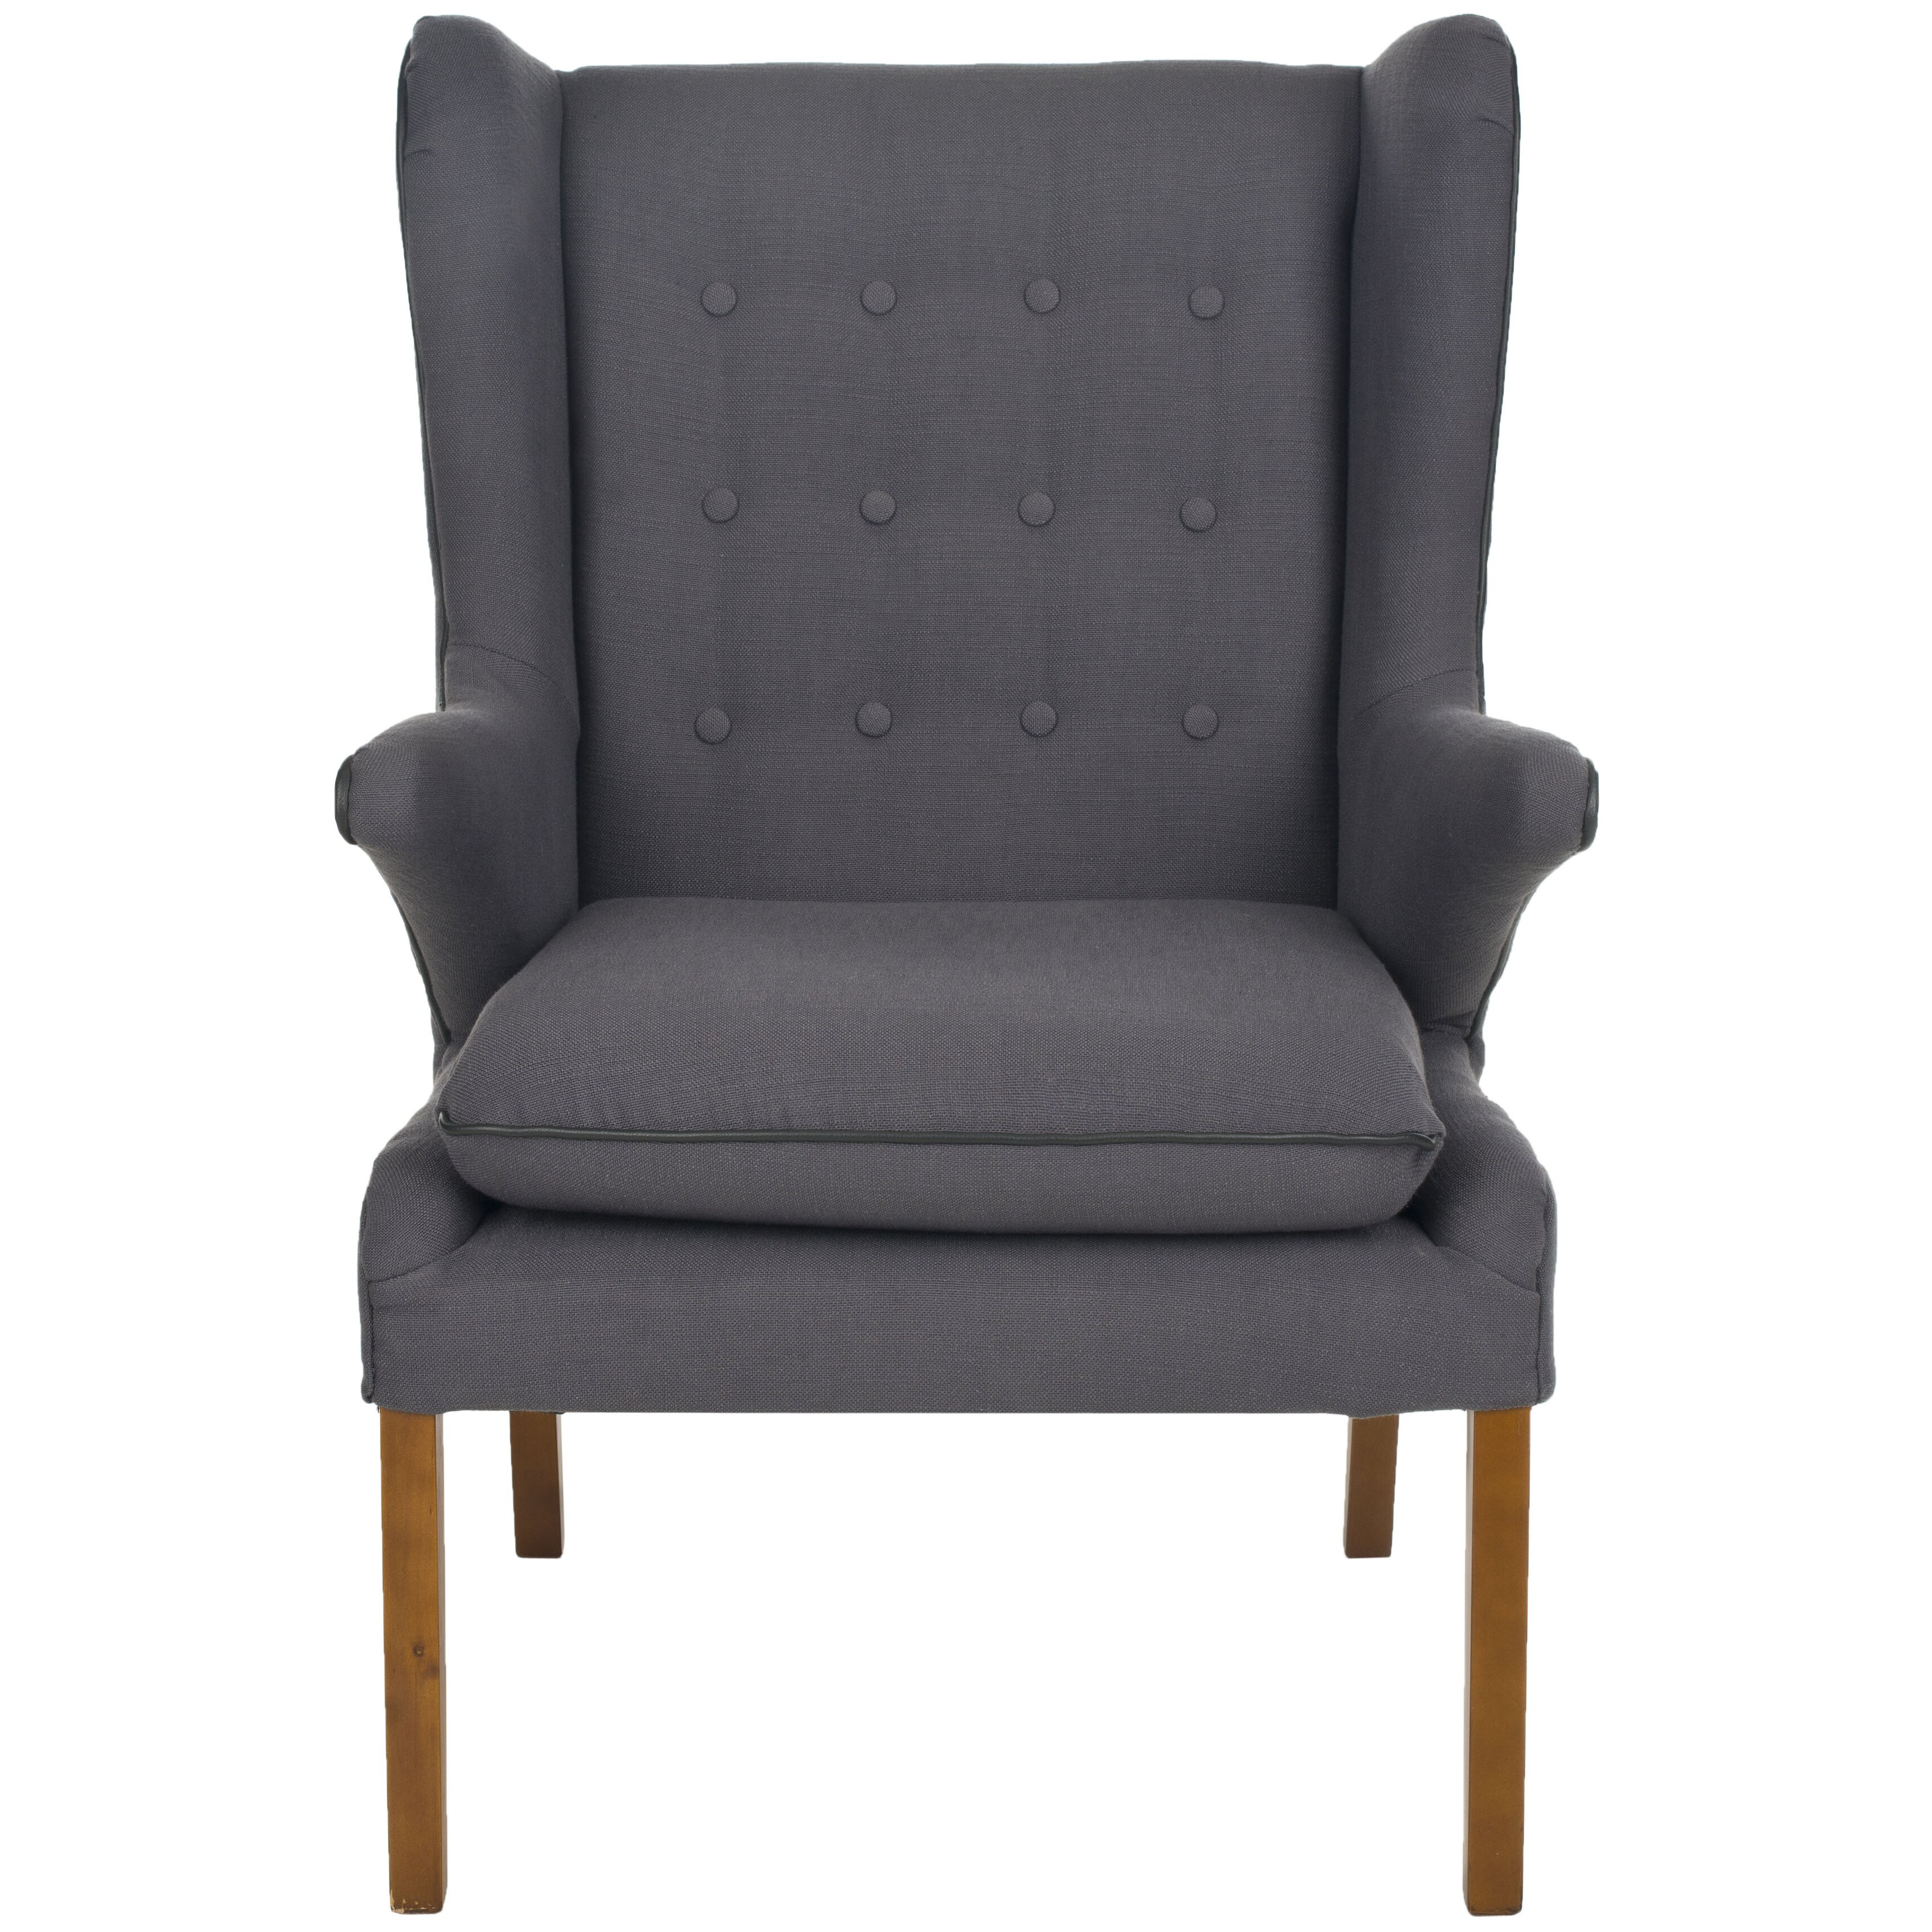 Safavieh Gomer Wing Arm Chair & Reviews | Wayfair